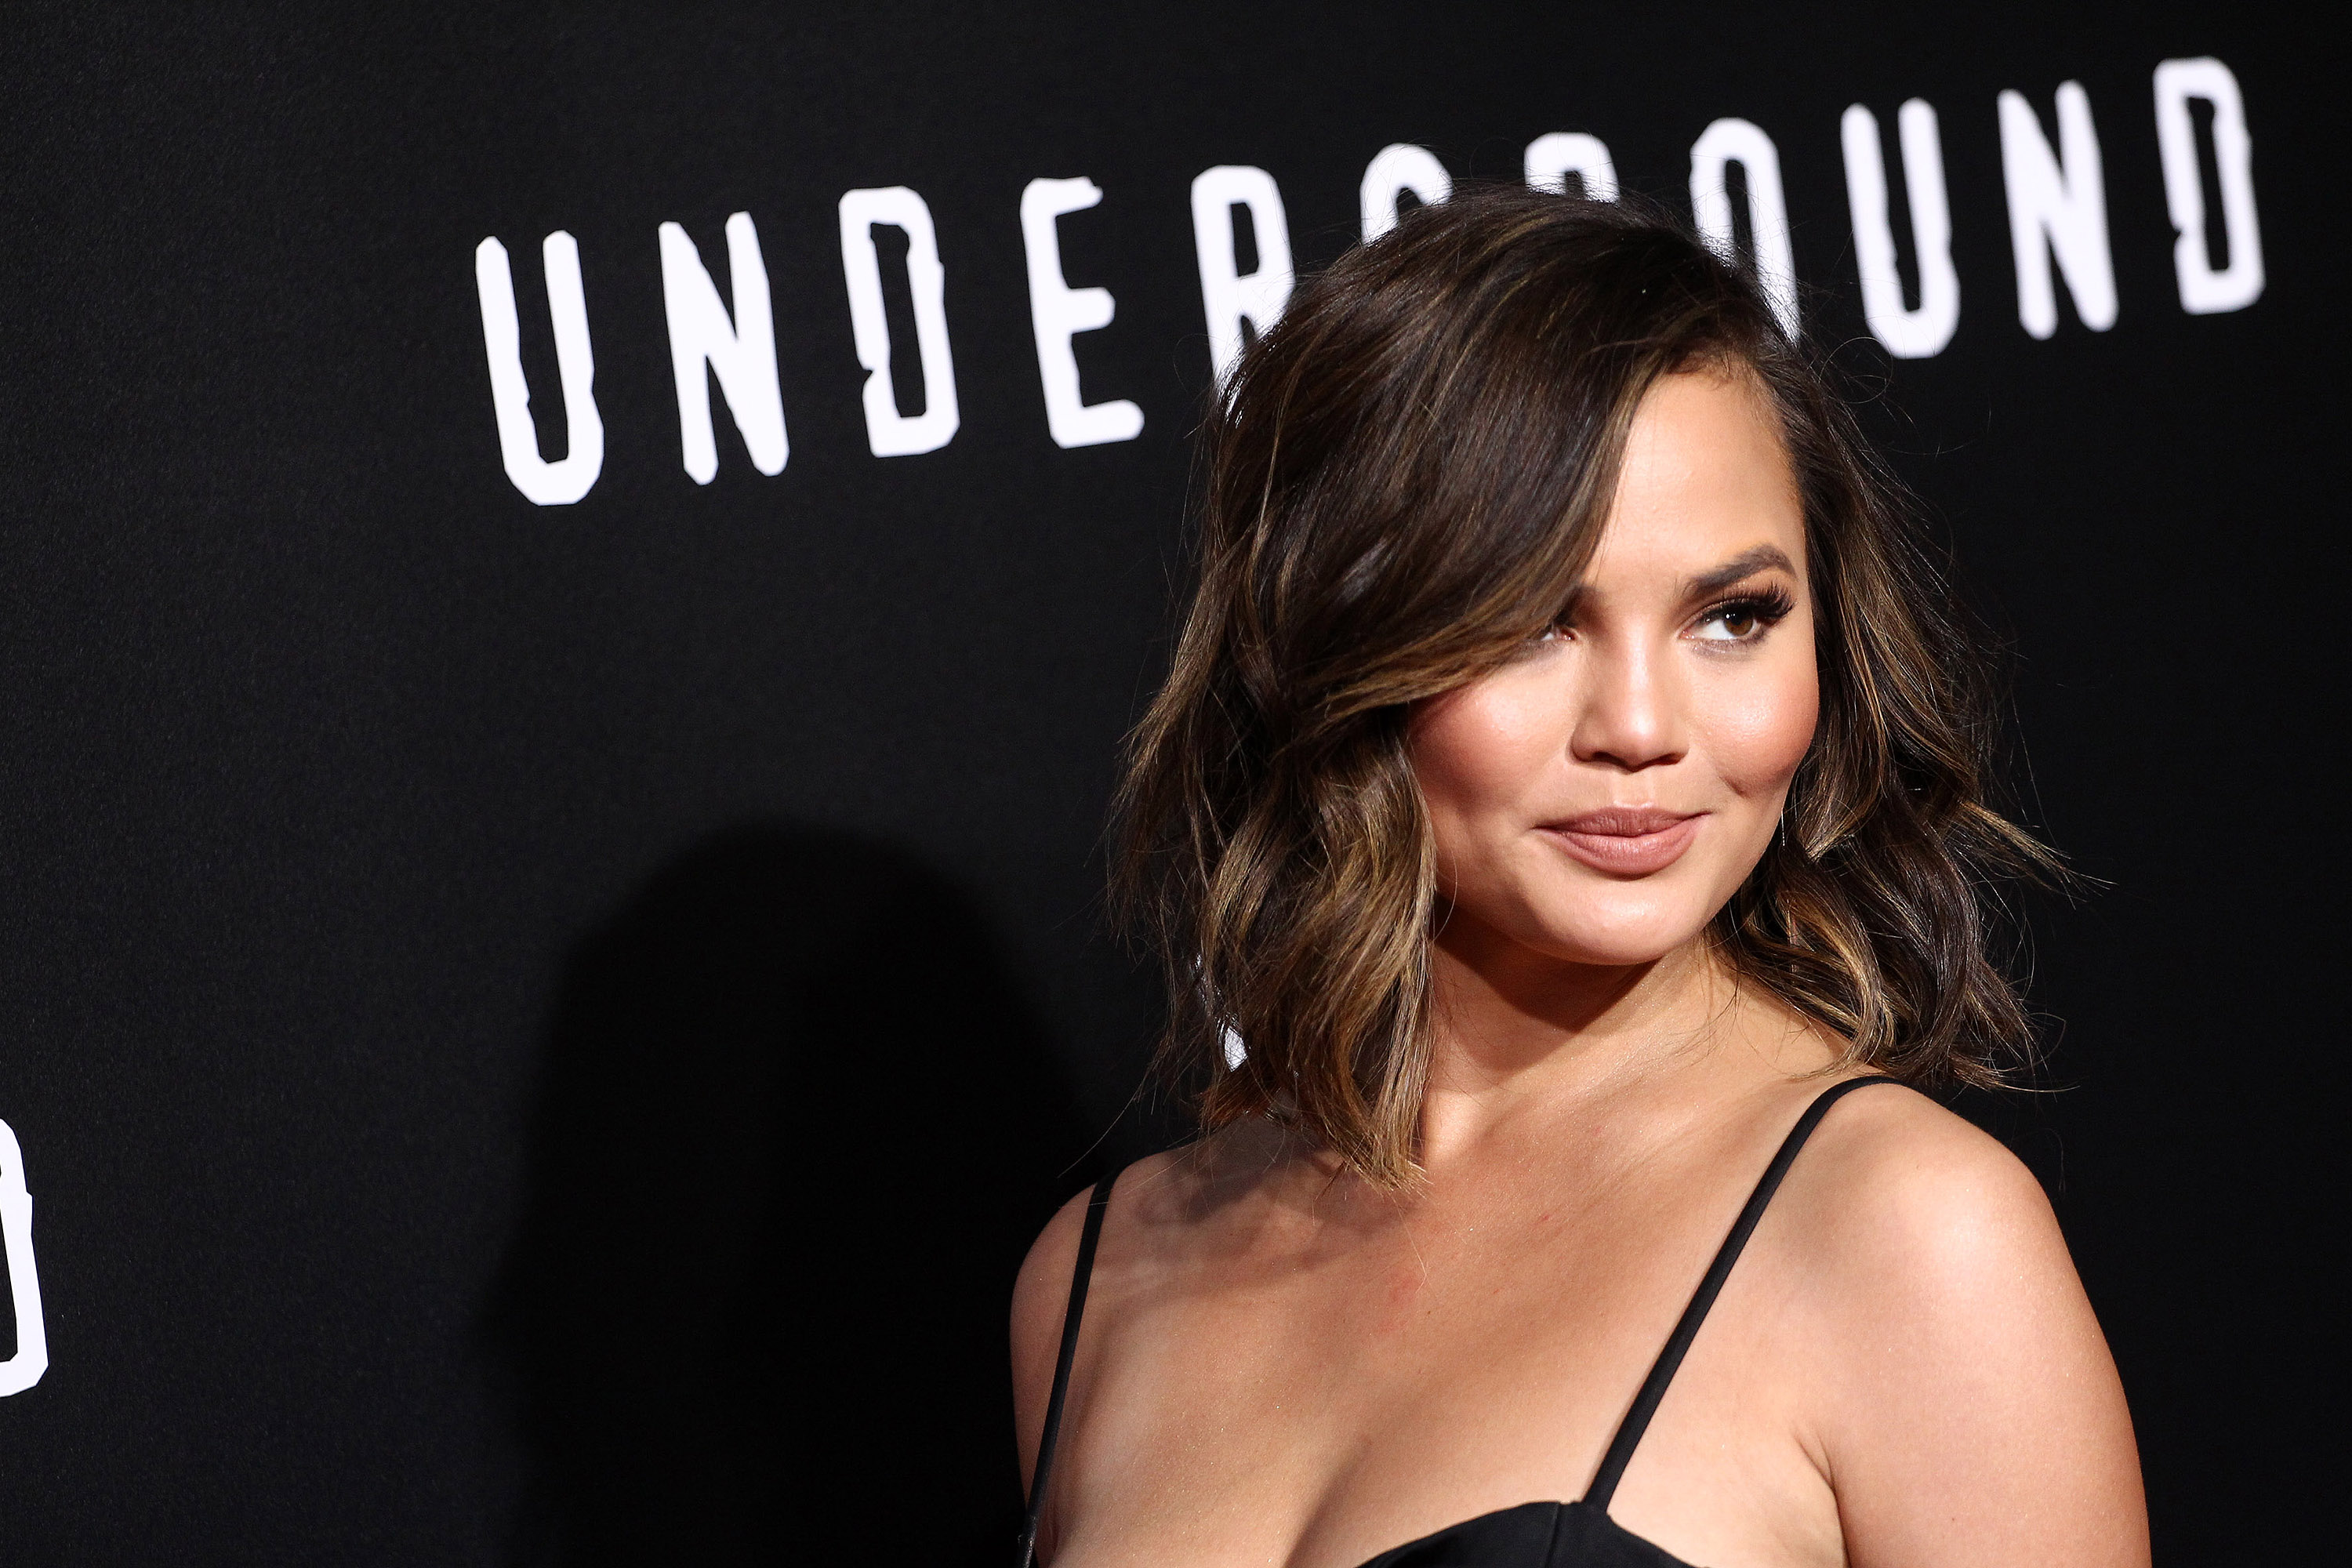 Chrissy Teigen looks exactly like Luna when she imitates her